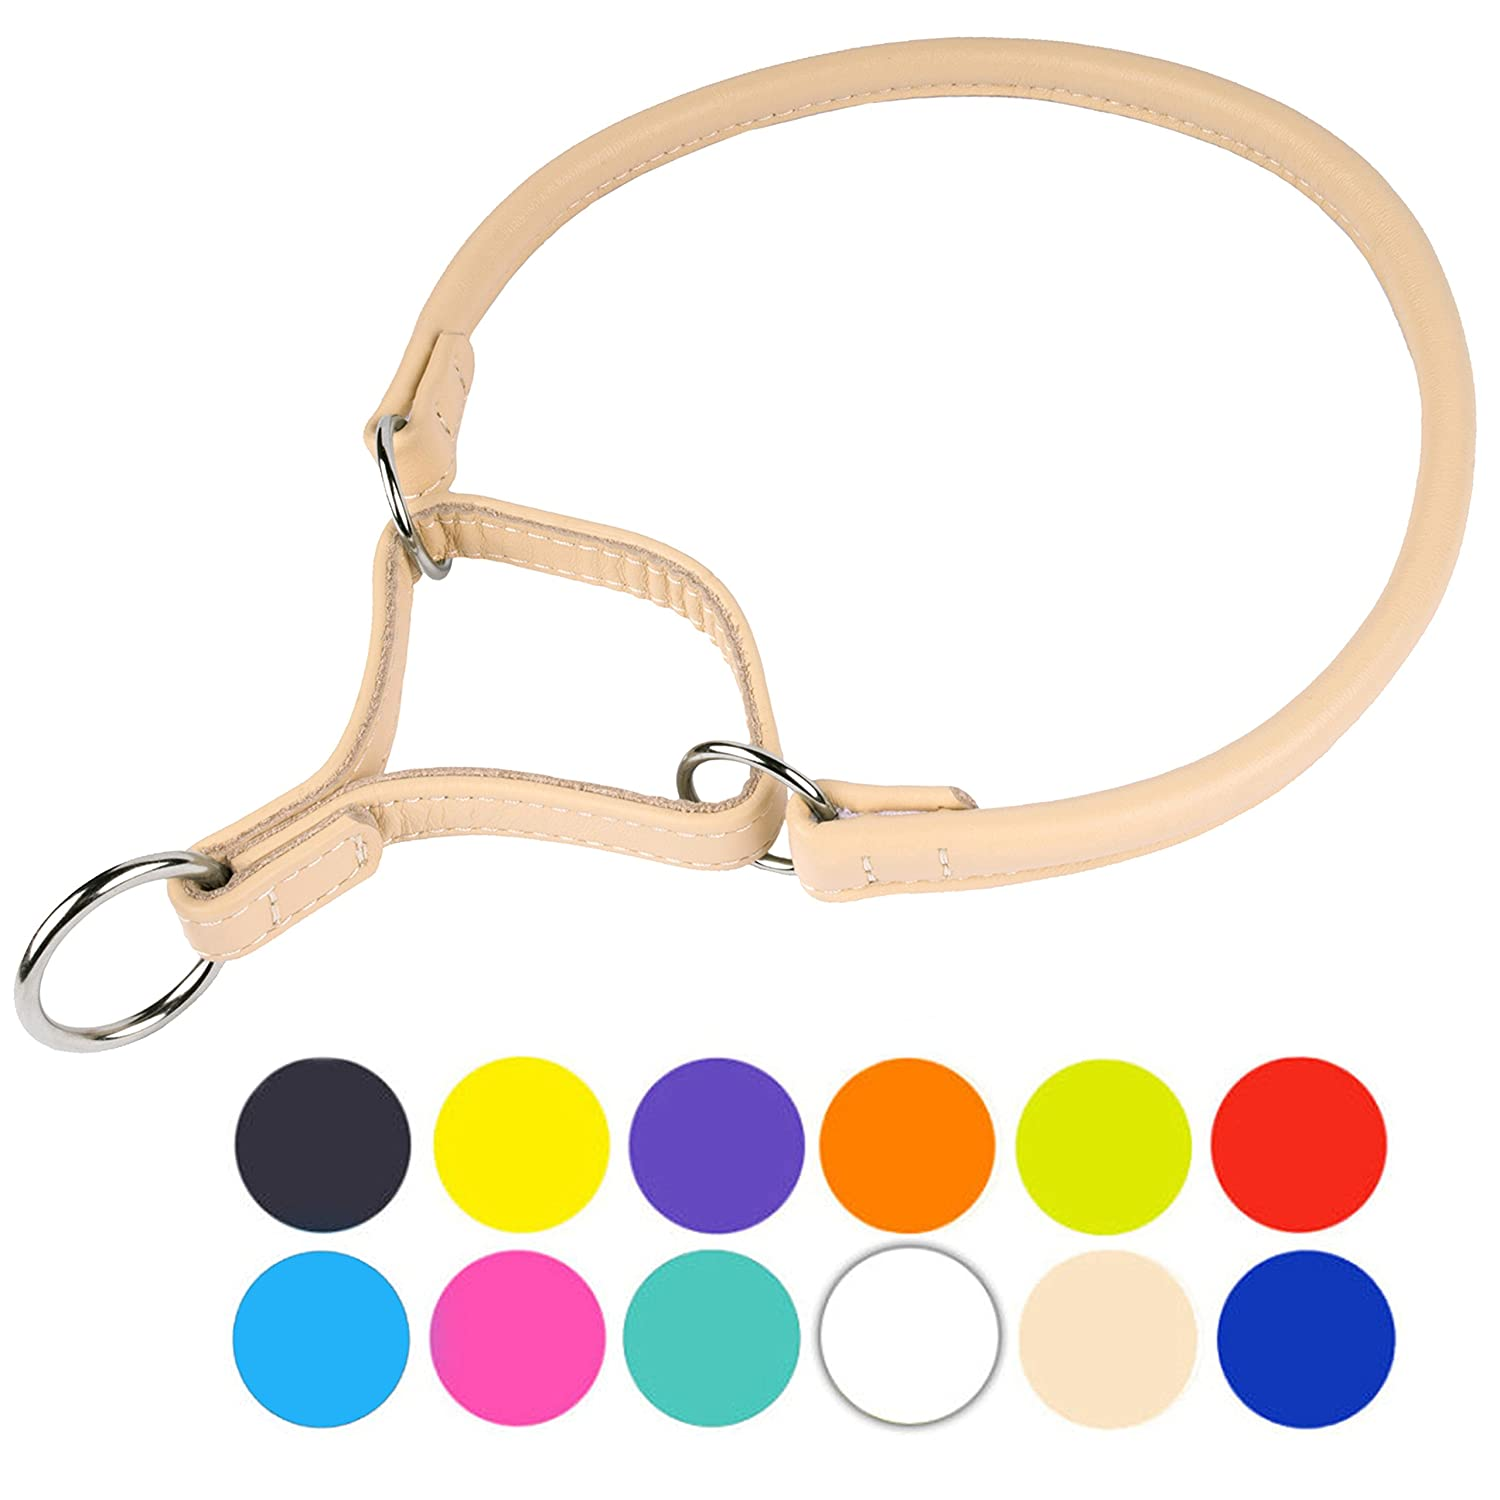 Beige Neck Fit 24\ Beige Neck Fit 24\ CollarDirect Rolled Martingale Dog Collar, Training Genuine Leather Collars for Dogs Small Medium Large Puppy Black Pink Brown White Red Green bluee orange (Beige, Neck Fit 24 -25 )